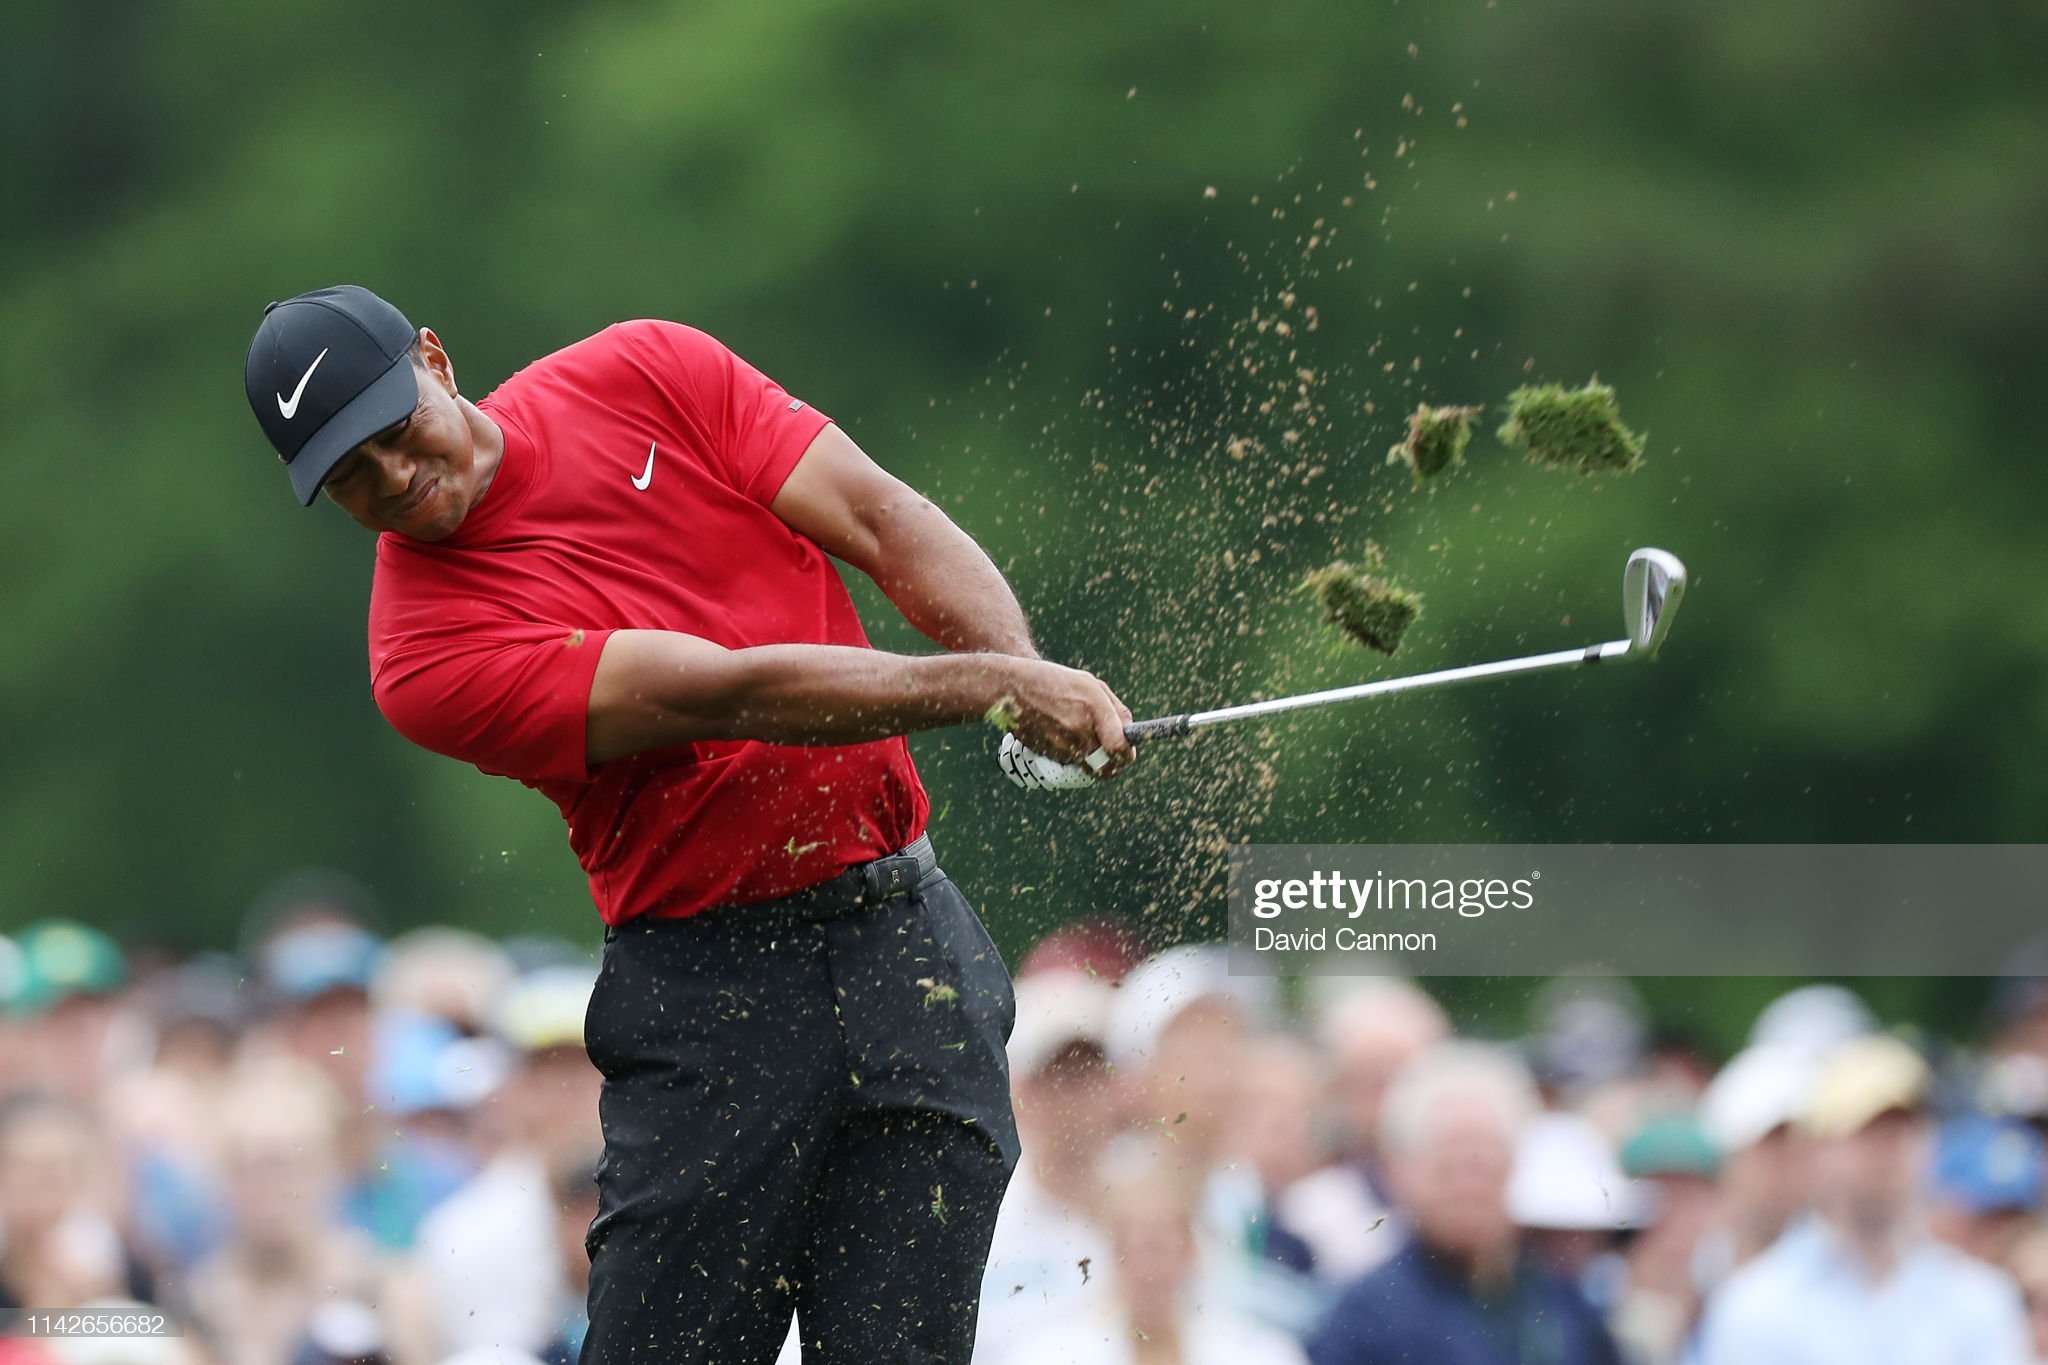 Has Tiger Woods missed again, for the fourth time?